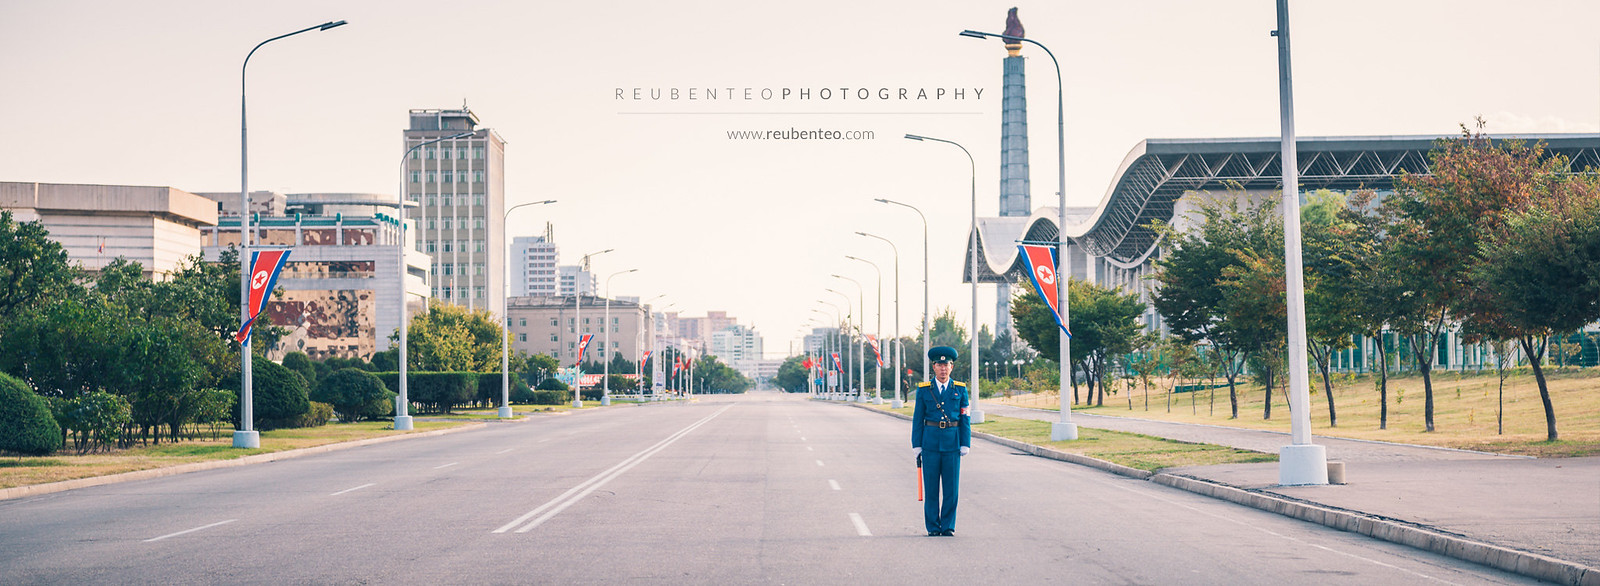 Policeman on Juche Tower Road, Pyongyang